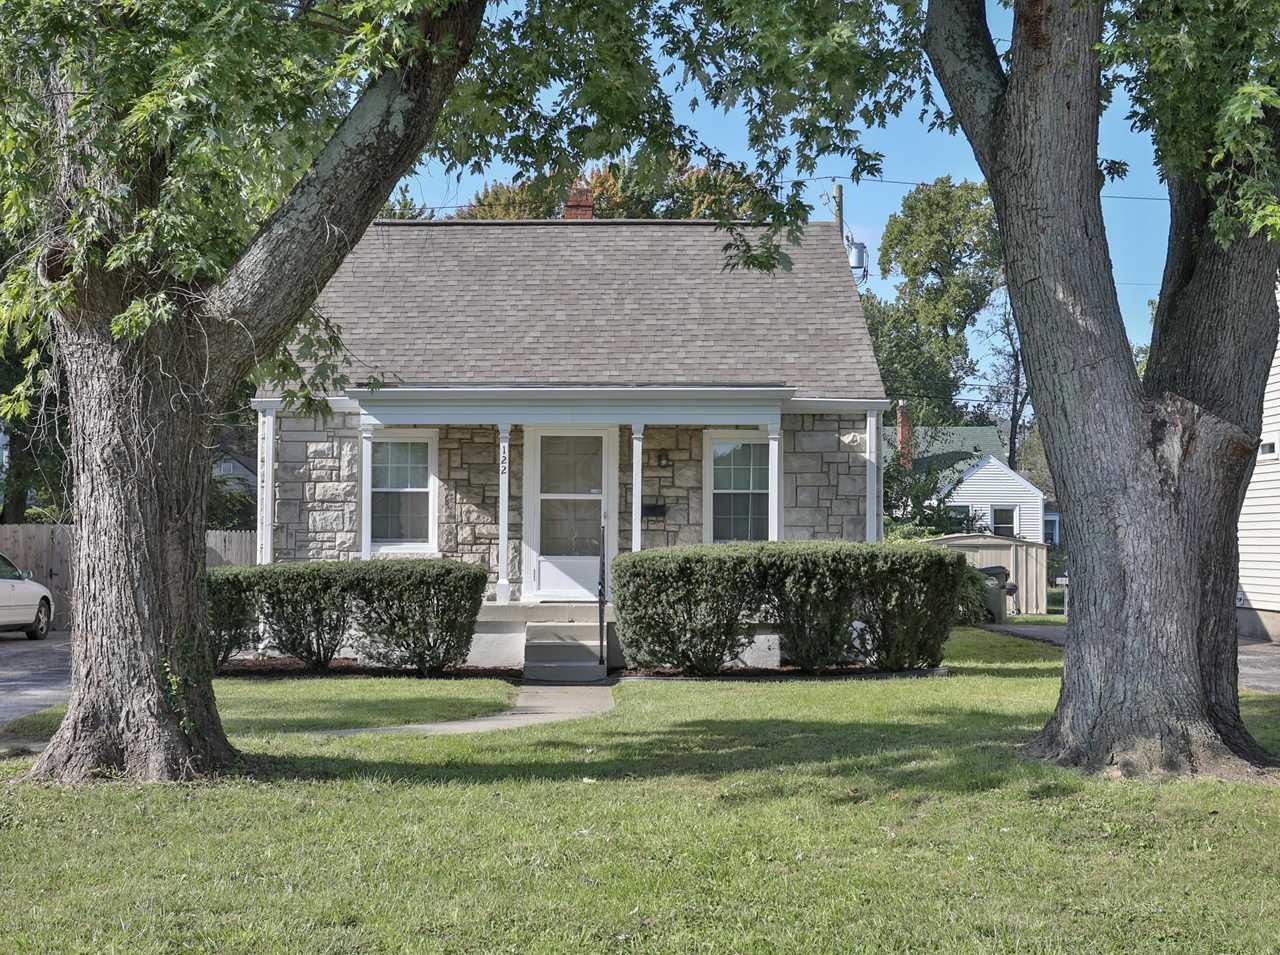 122 Colonial Dr Louisville, KY 40207 | MLS #1516707 Photo 1